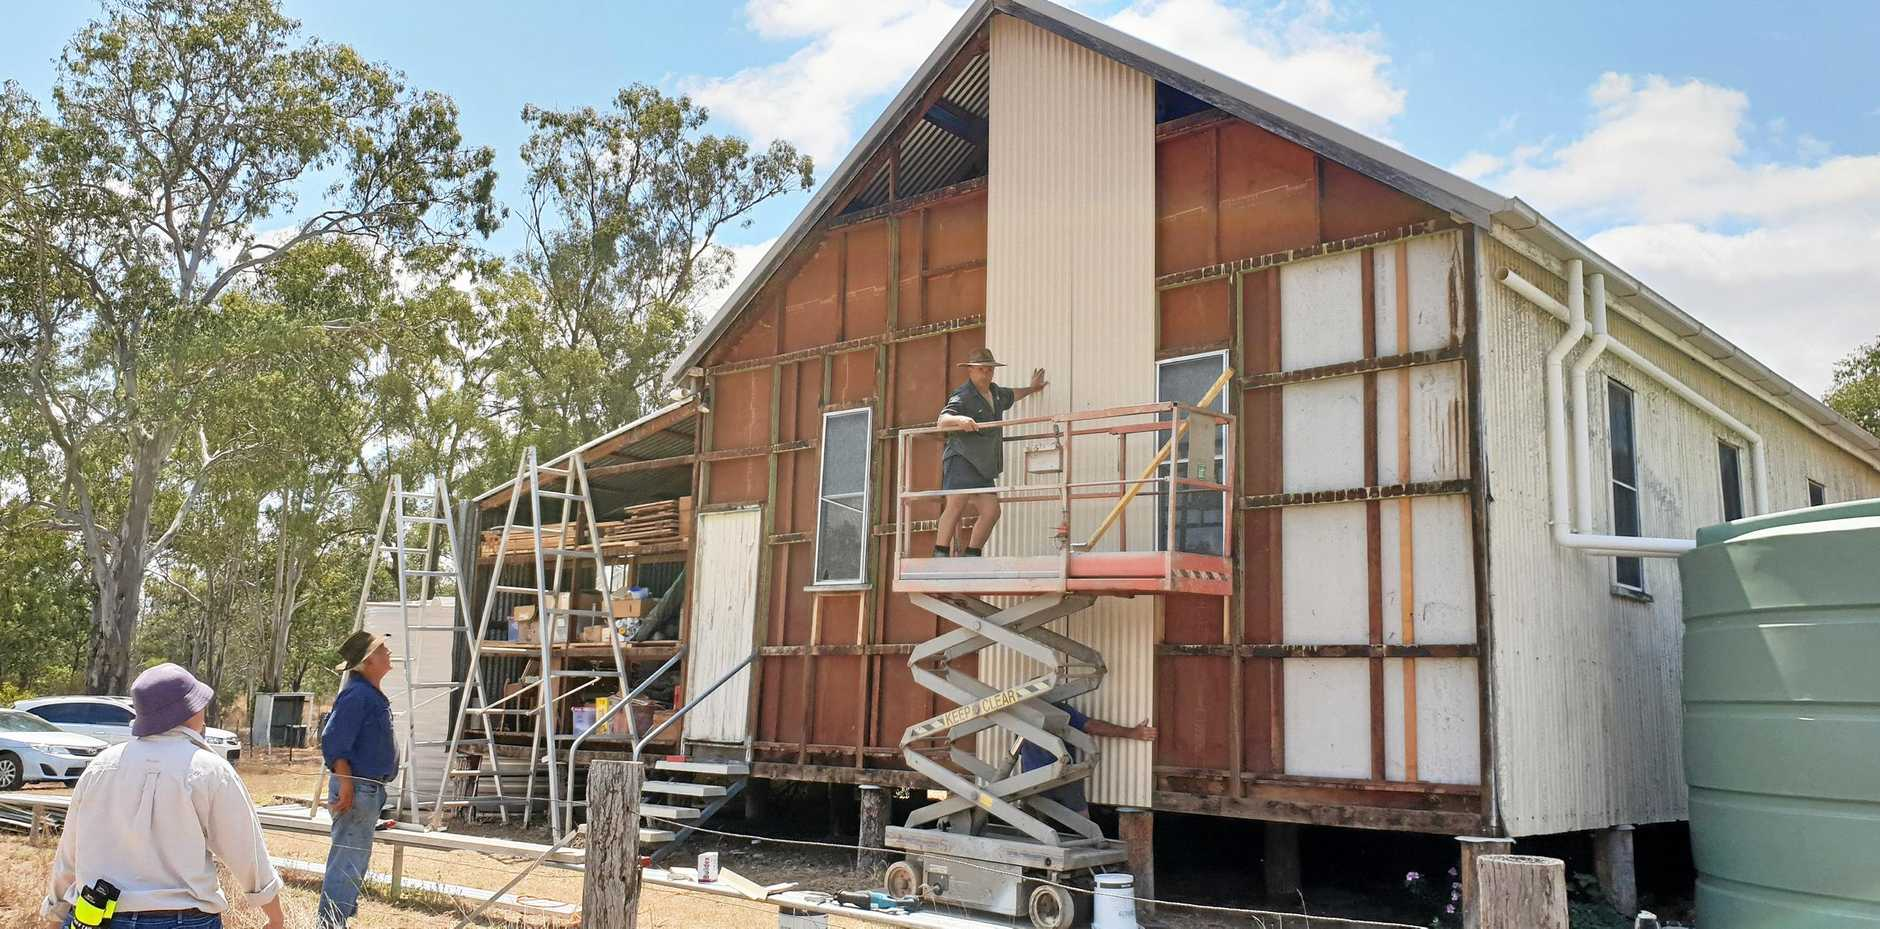 UPGRADE: Dallarnil Sports Club members this past year have upgraded its hall's exterior.